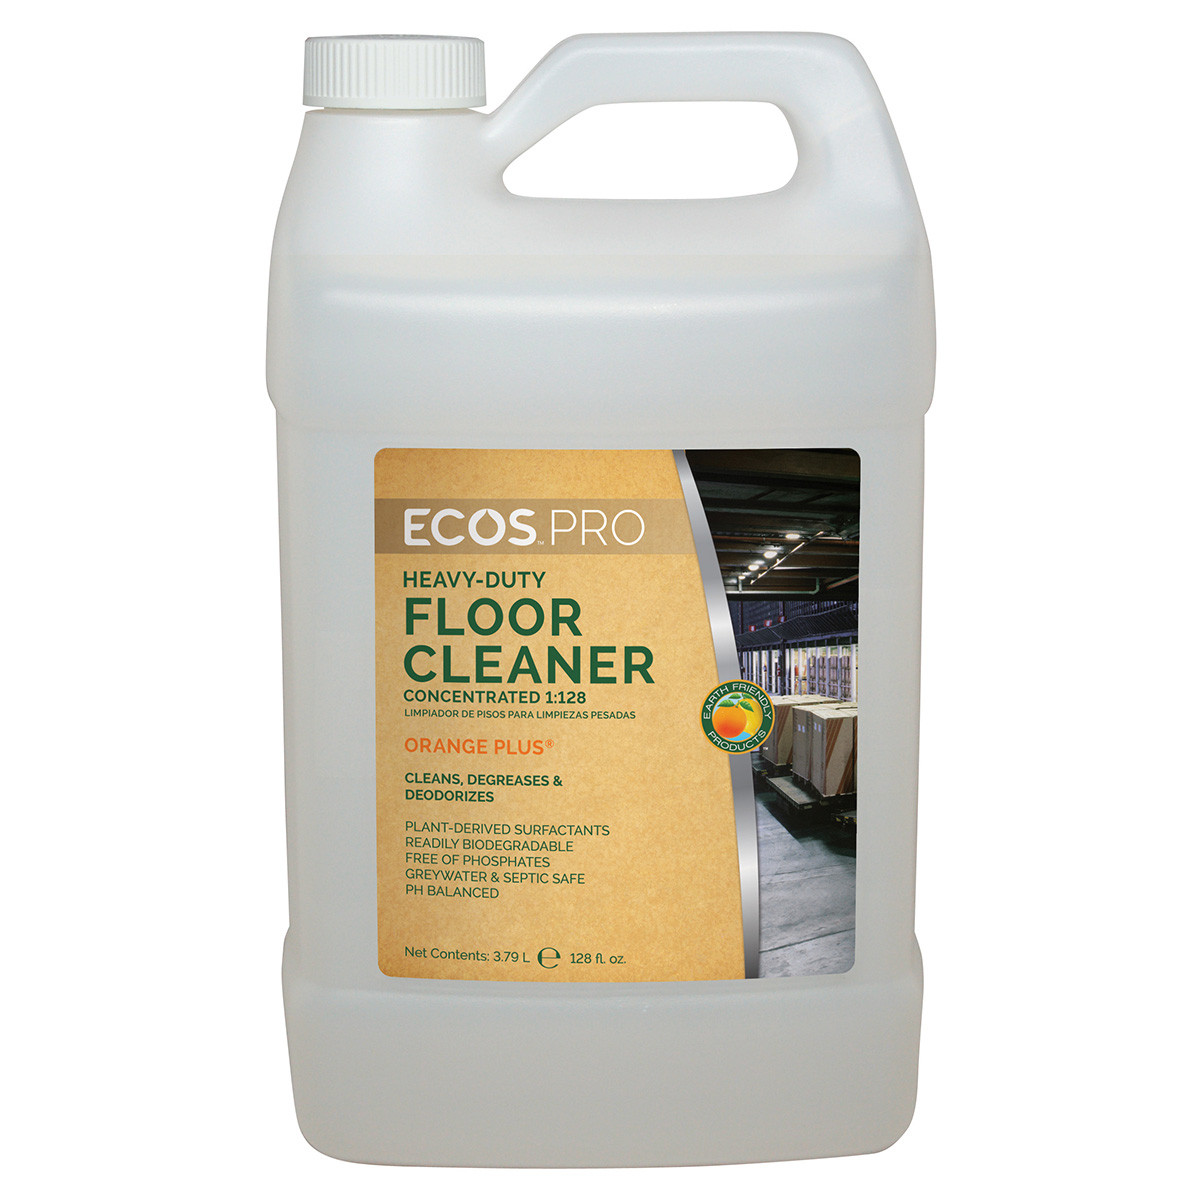 earth friendly products ecos pro orange plus concentrated floor cleaner degreaser. Black Bedroom Furniture Sets. Home Design Ideas